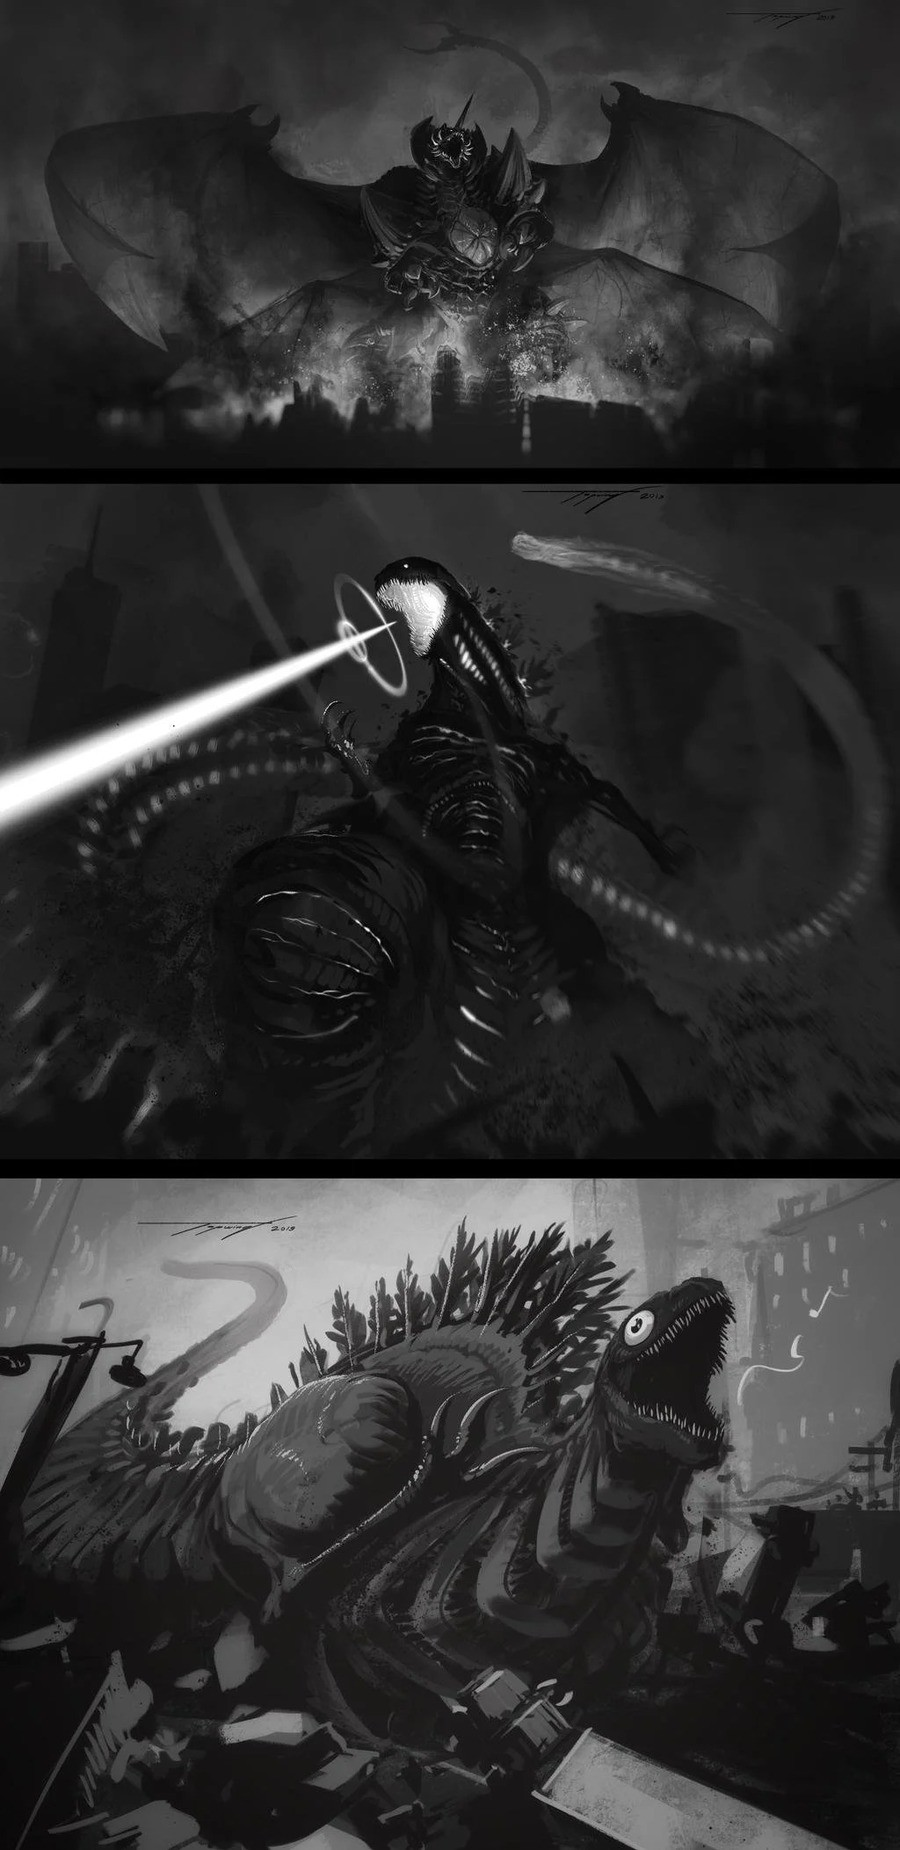 Kaijus by Tapwing. .. Destoroyah is the coolest concept that was never further explored. He's essentially the personification of the horrific machinations of war and weapons too dead